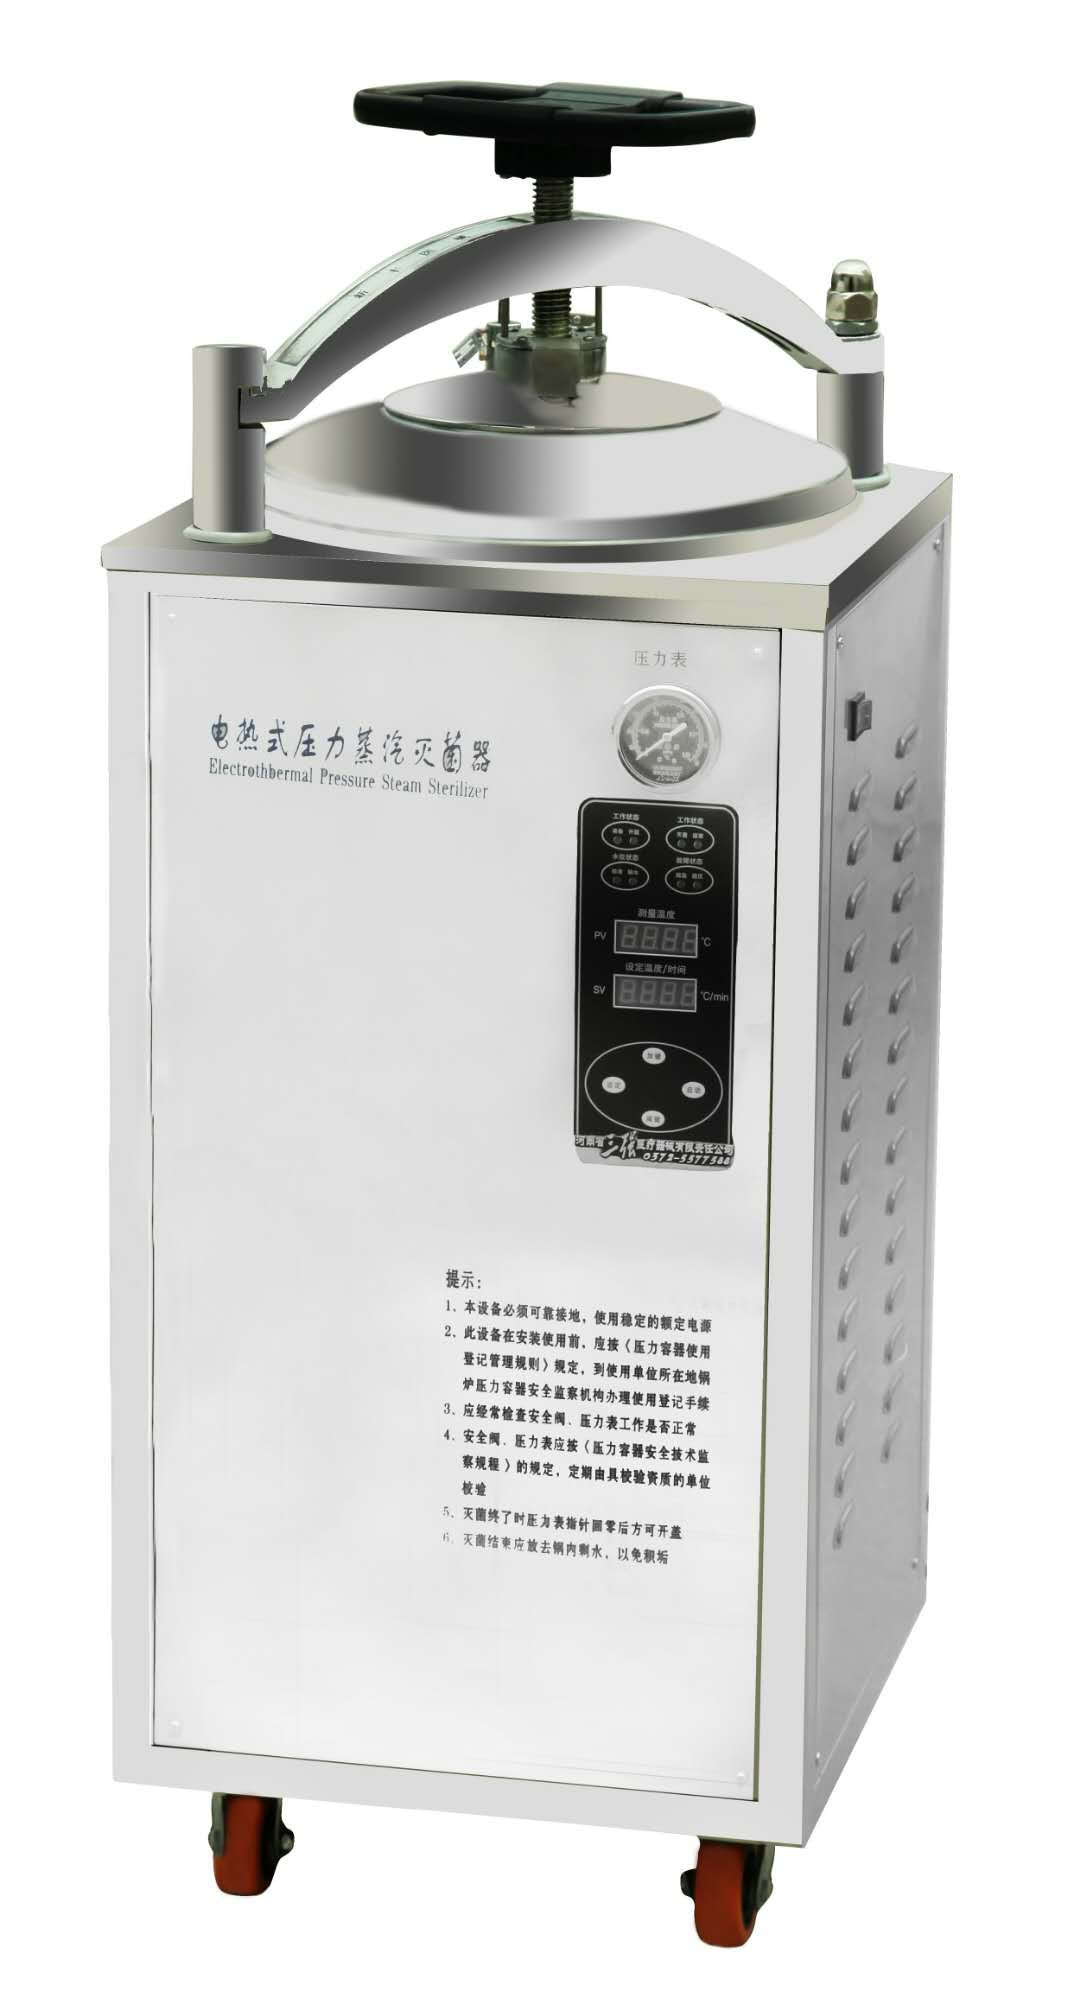 Steam sterilizers